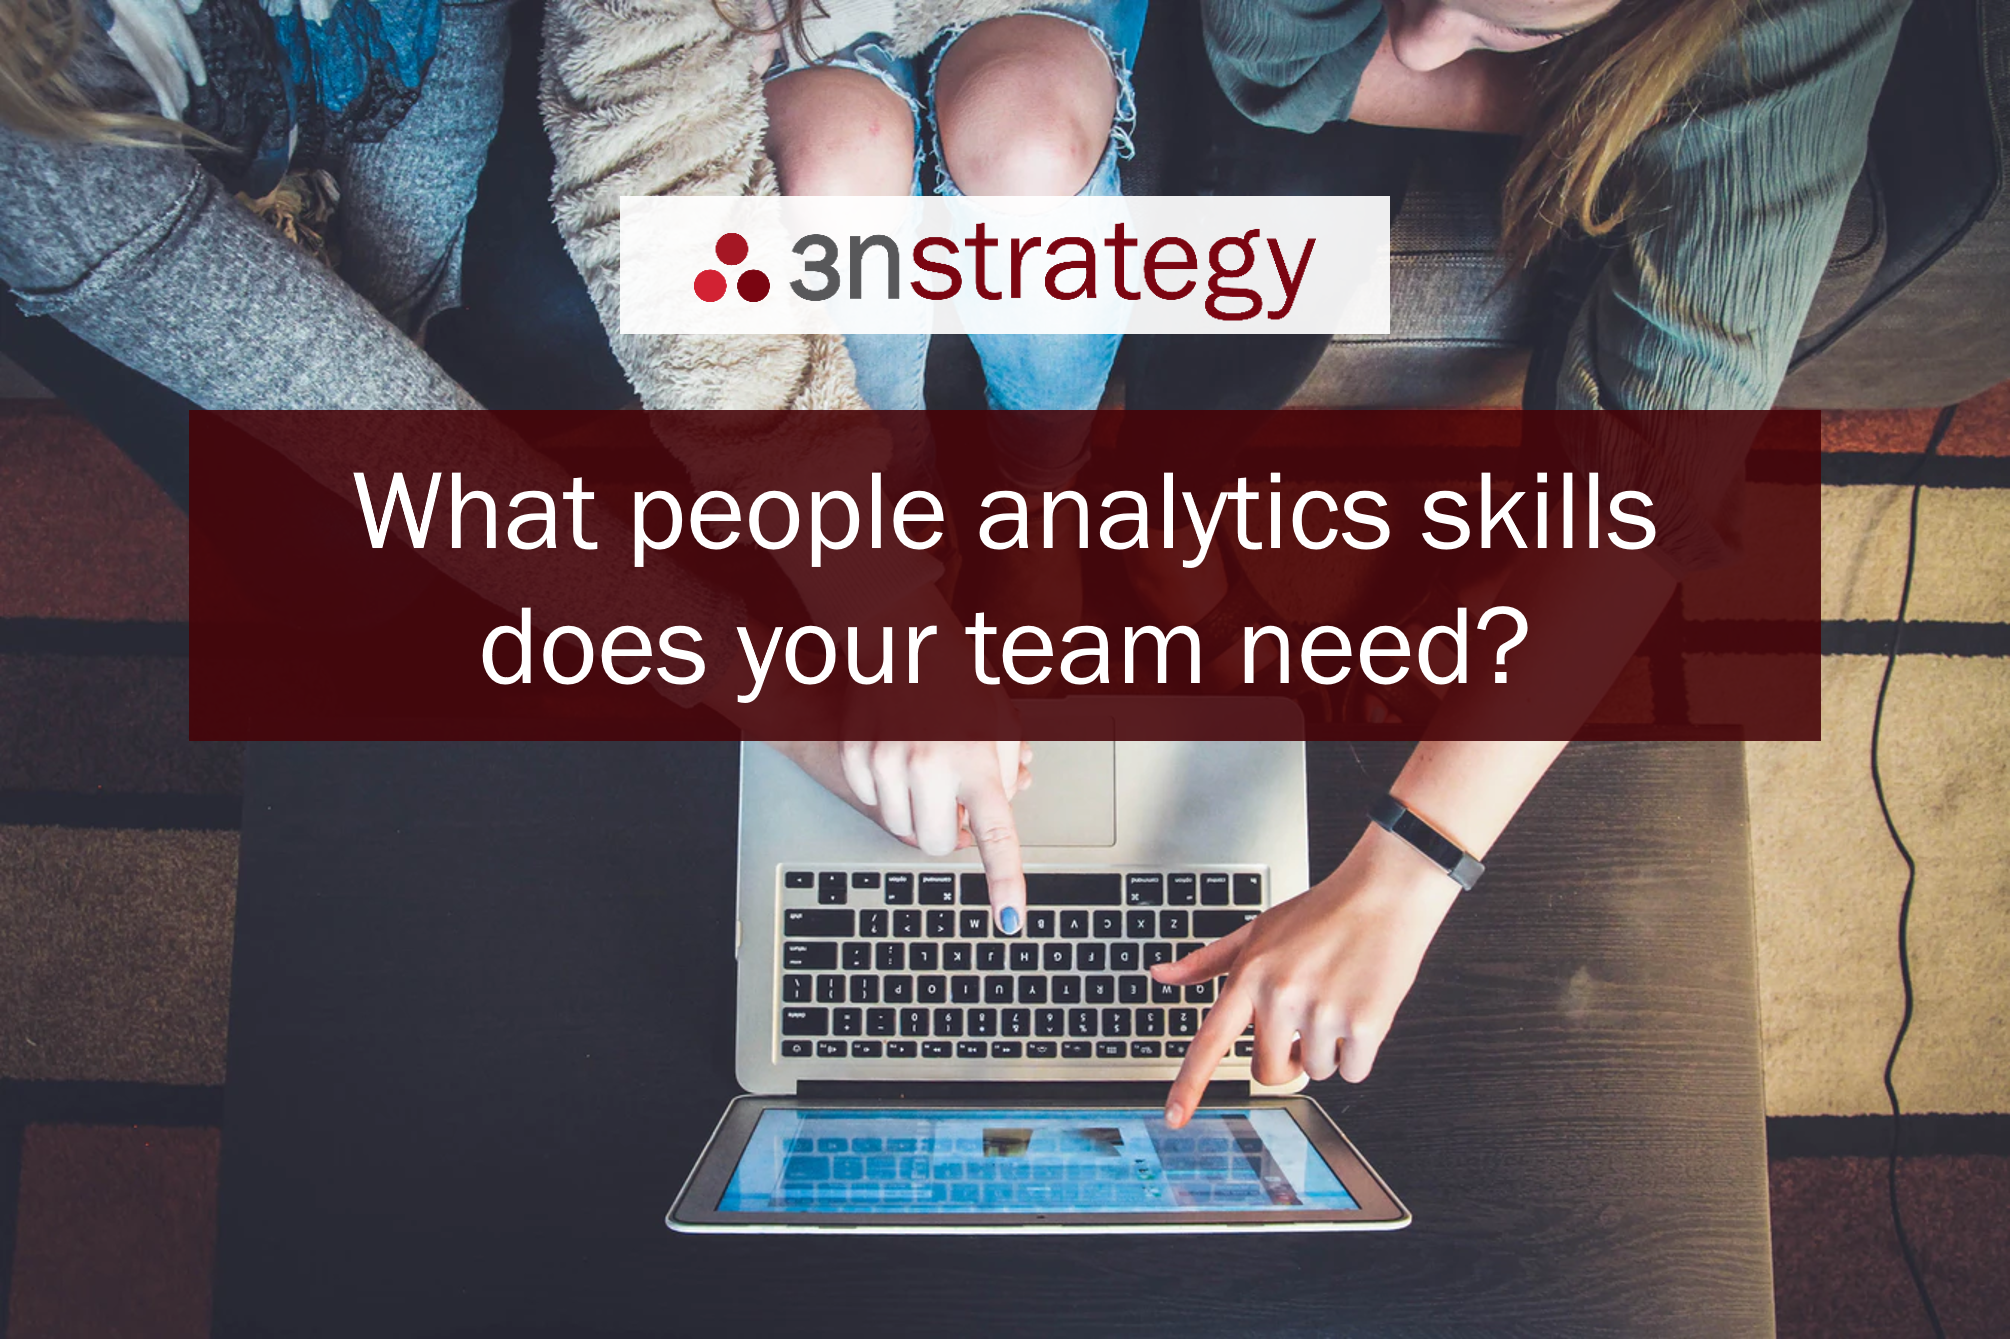 What people analytics skills does your team need?